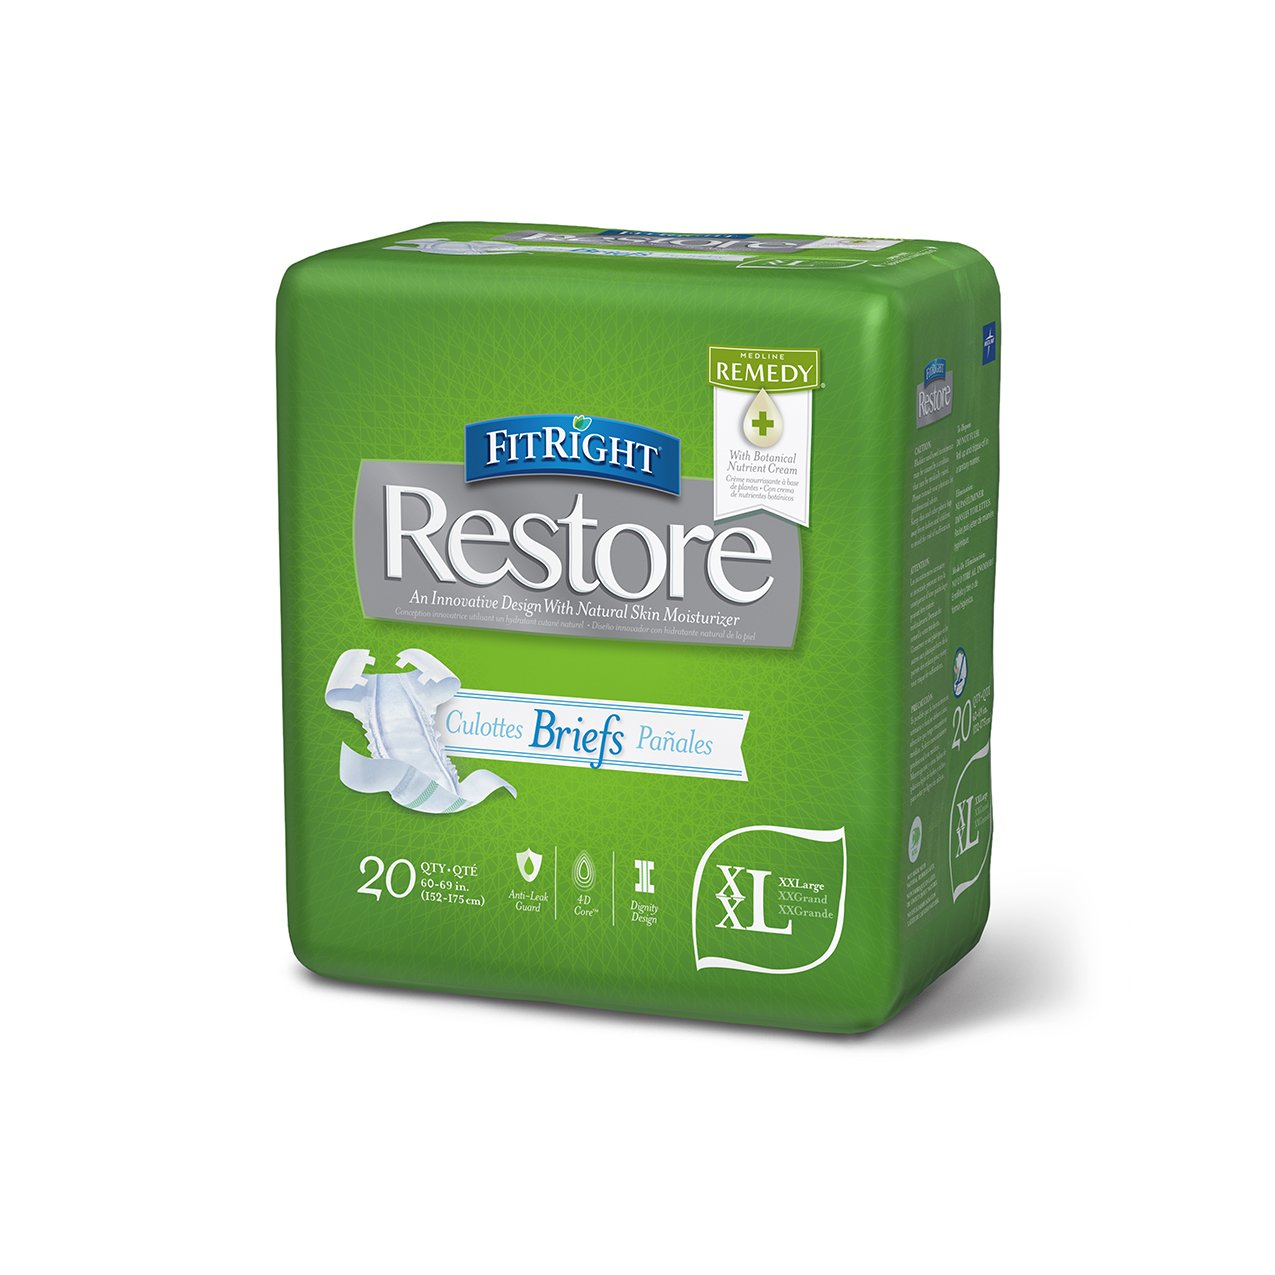 FitRight Restore Adult Briefs with Tabs, Heavy Absorbency, XX-Large, 60''-69'', For Adult Incontinence, Comfort and Skin Health (Pack of 80)